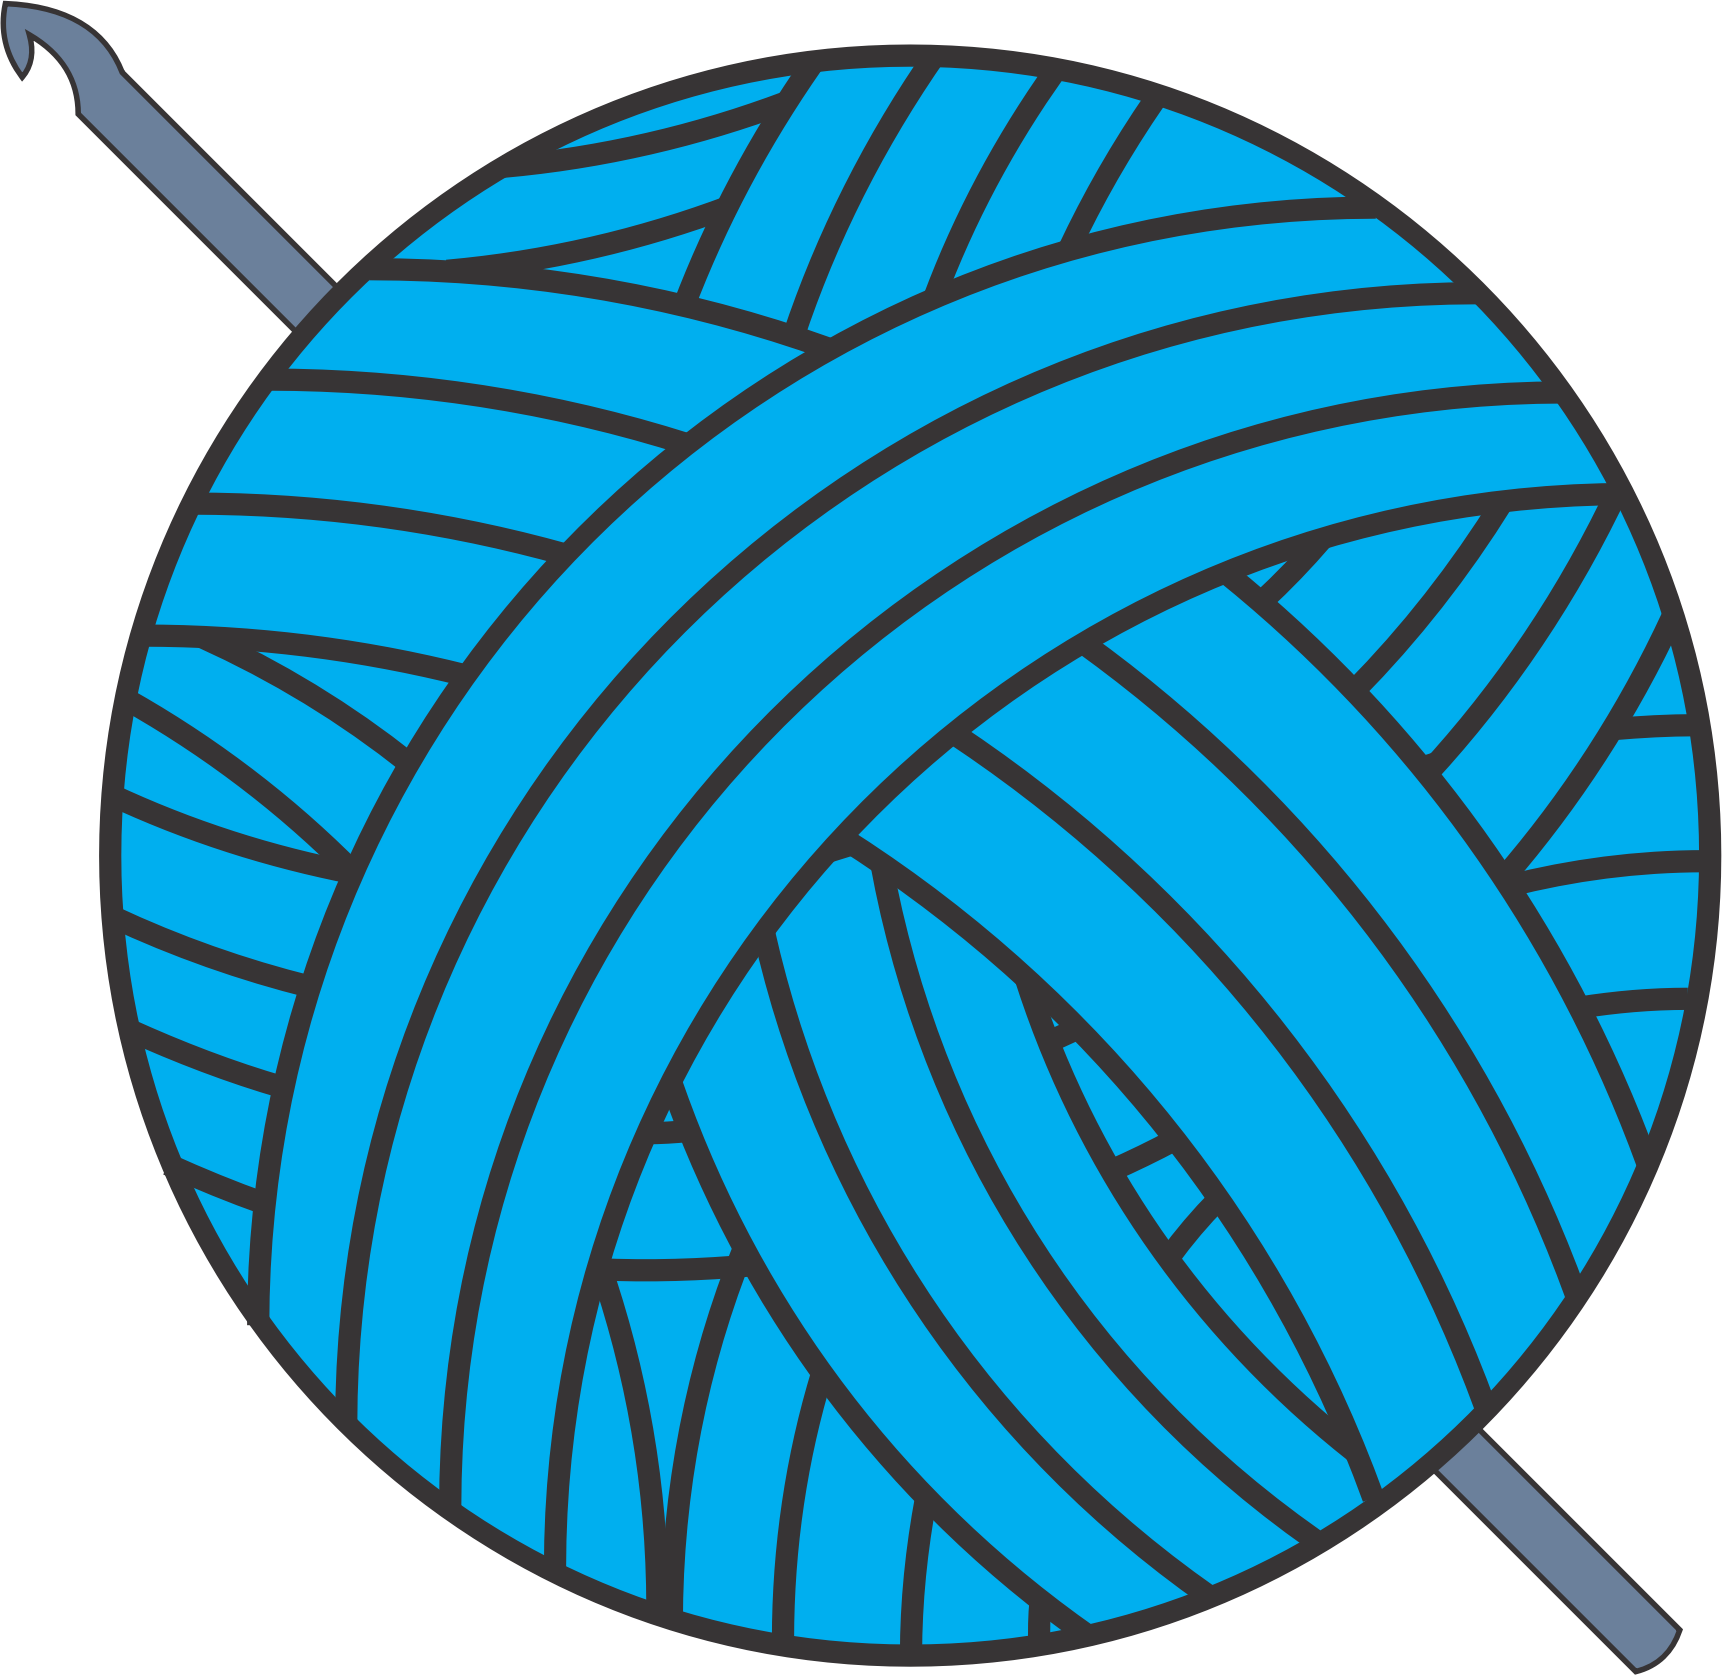 Yarn Clipart   Free download on ClipArtMag